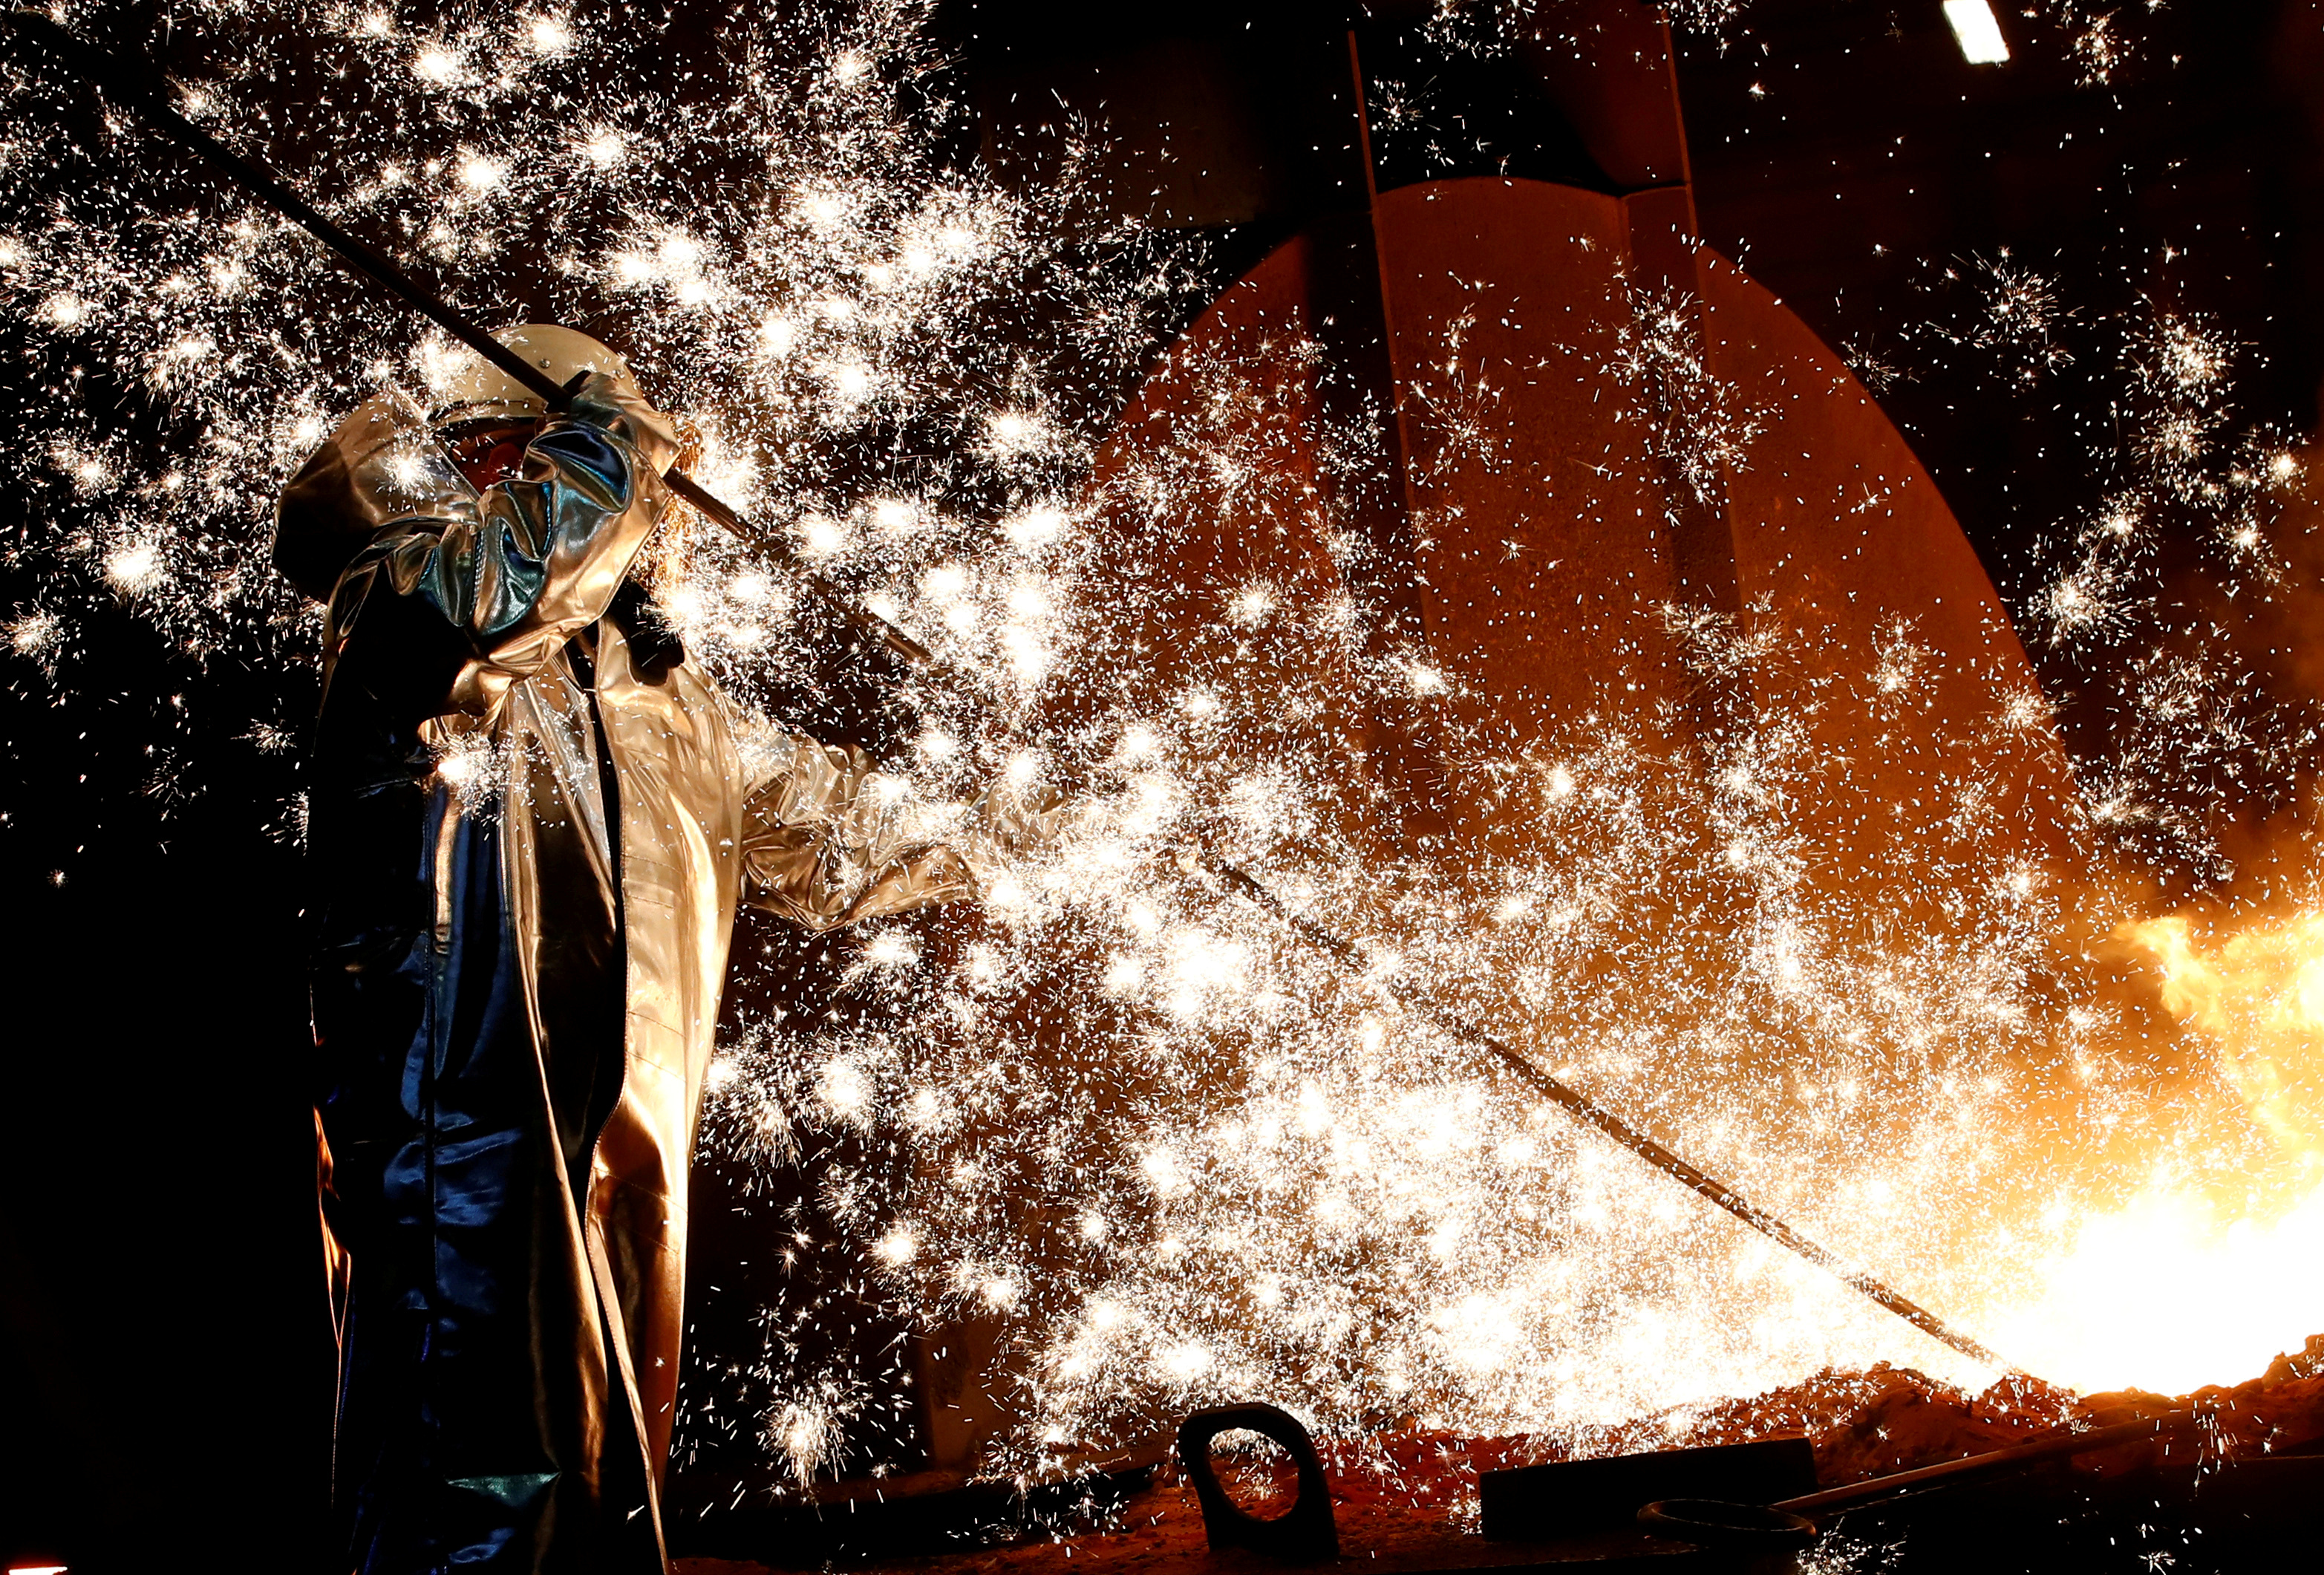 A steel worker of Germany's industrial conglomerate ThyssenKrupp AG stands a mid of emitting sparks of raw iron from a blast furnace at Germany's largest steel factory in Duisburg, Germany. Picture taken January, 28, 2019.    REUTERS/Wolfgang Rattay/File Photo